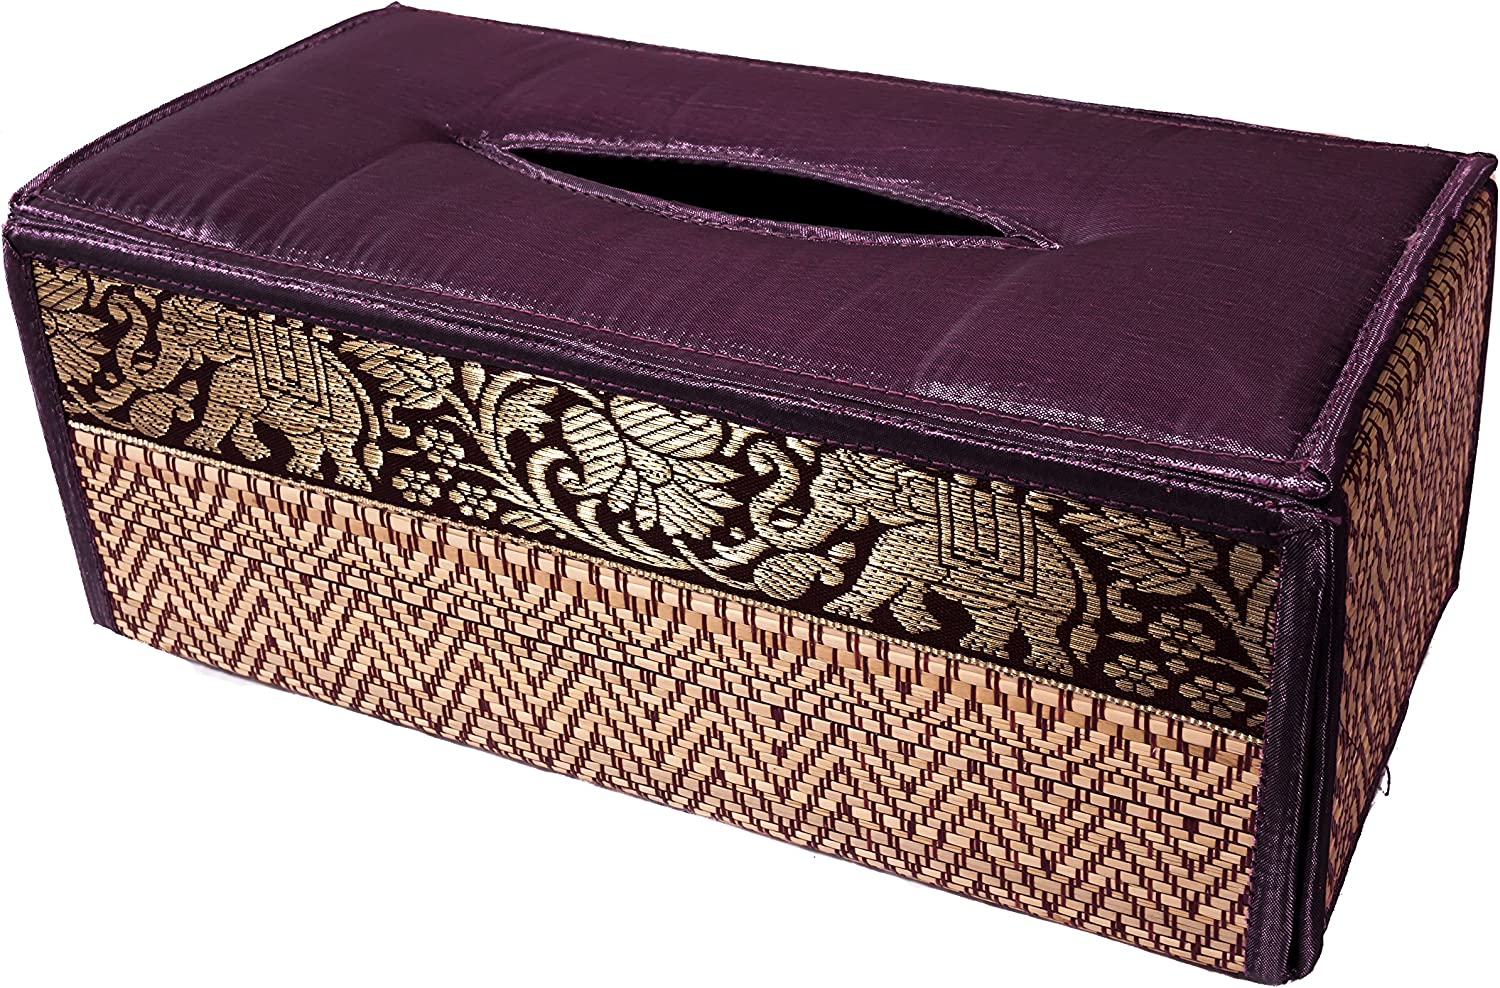 CCcollections Tissue Box A Cover case Sheath Natural Reed Wicker ECO Sustainable Material Plush Silk Trim Elephant Side (Purple Violet)